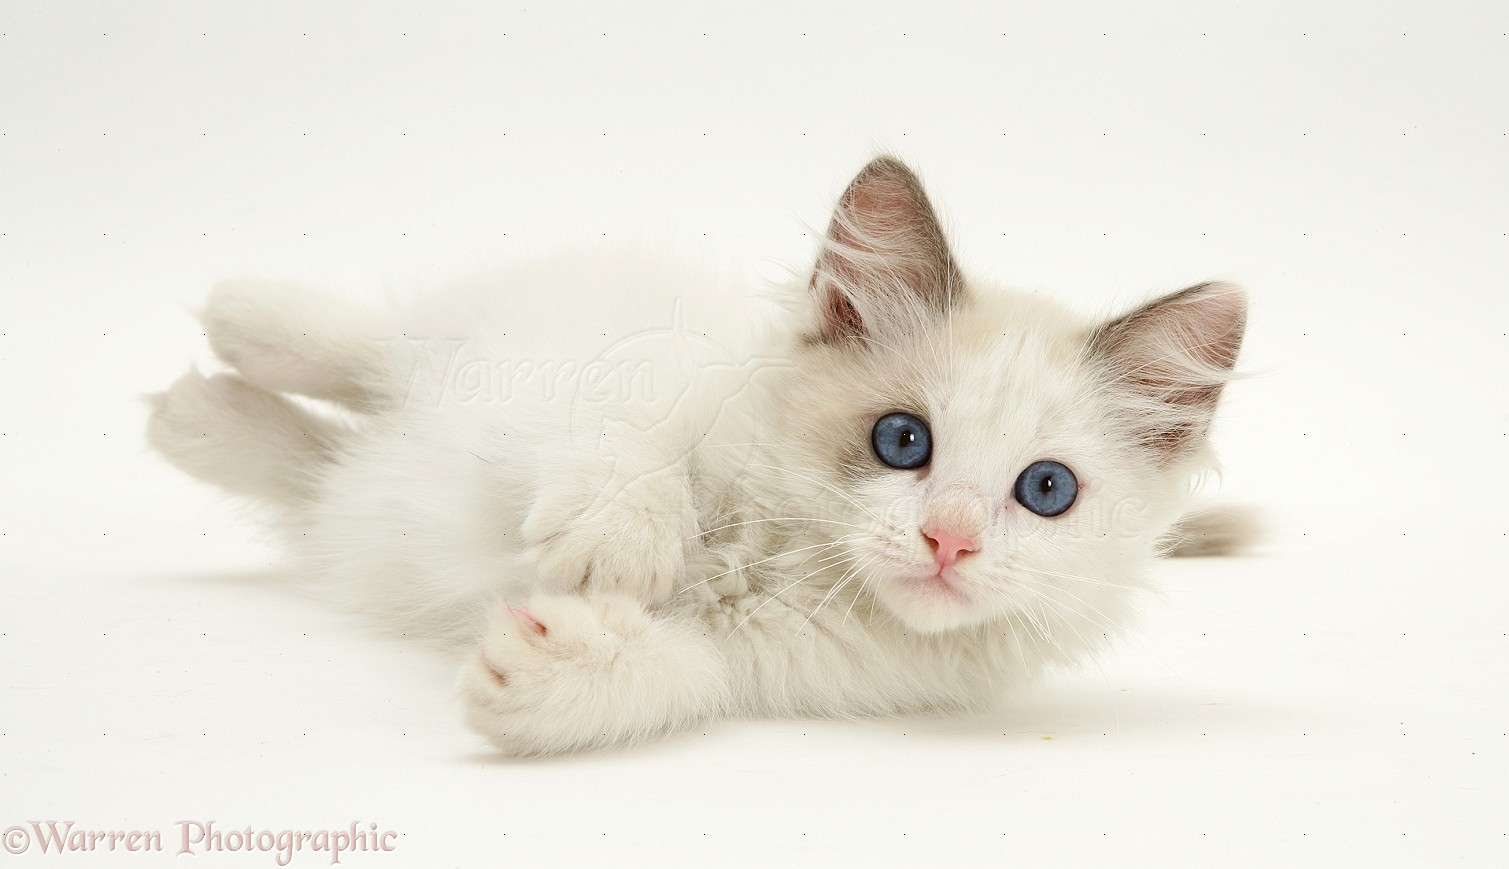 Cute Kittens images blue eyed kitties HD wallpaper and background